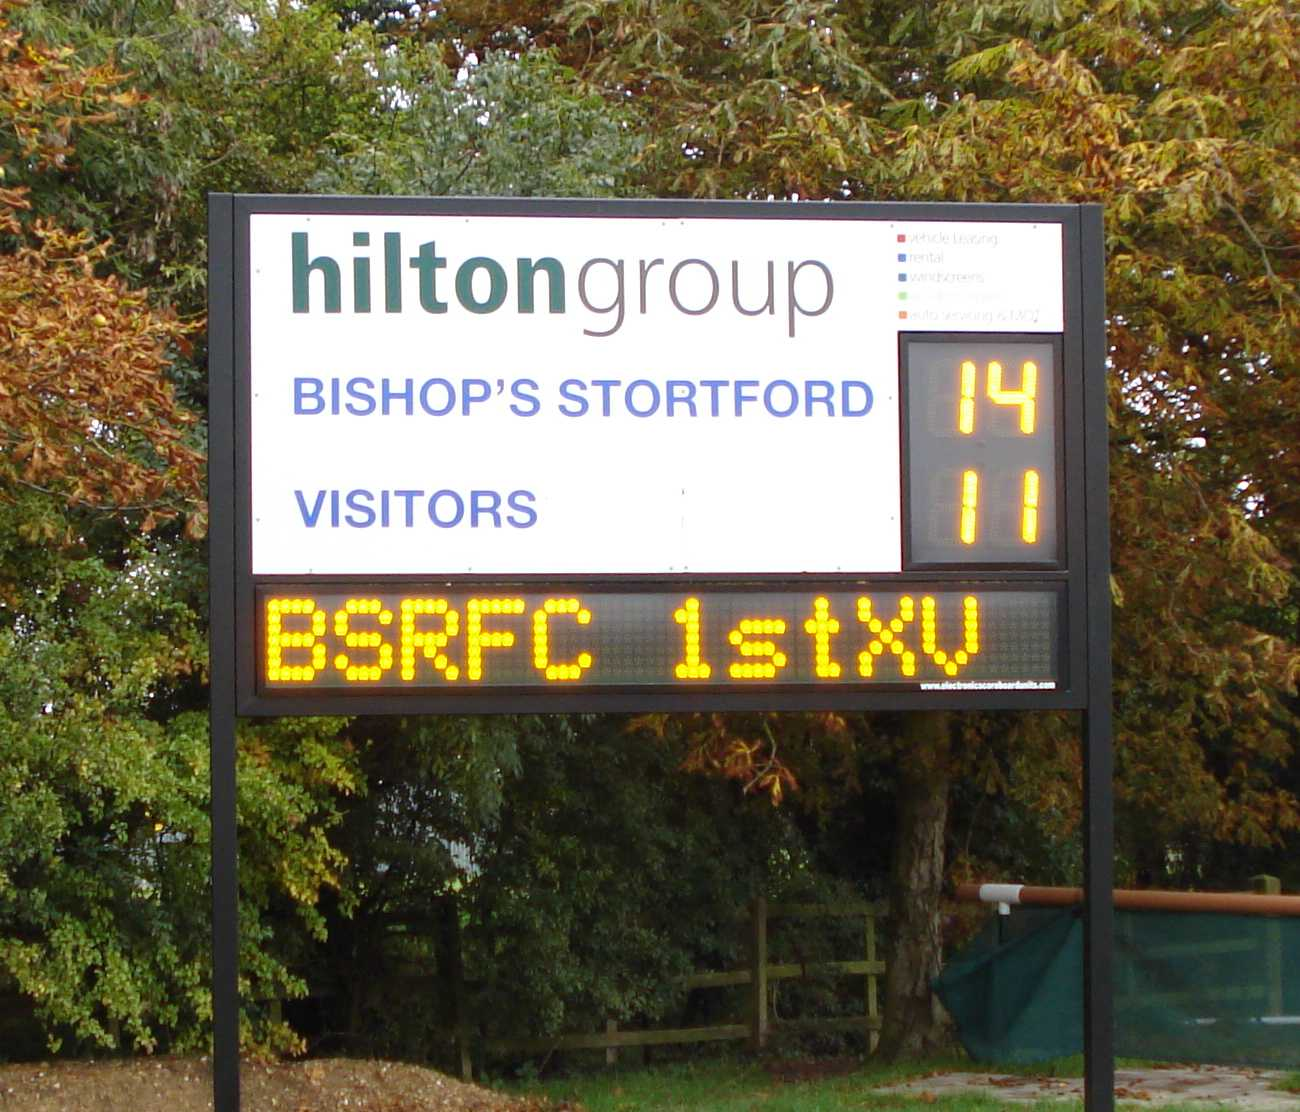 ustom electronic rugby scoreboard for Bishop Stortford RFC with alpha numeric panel to show messages or adverts